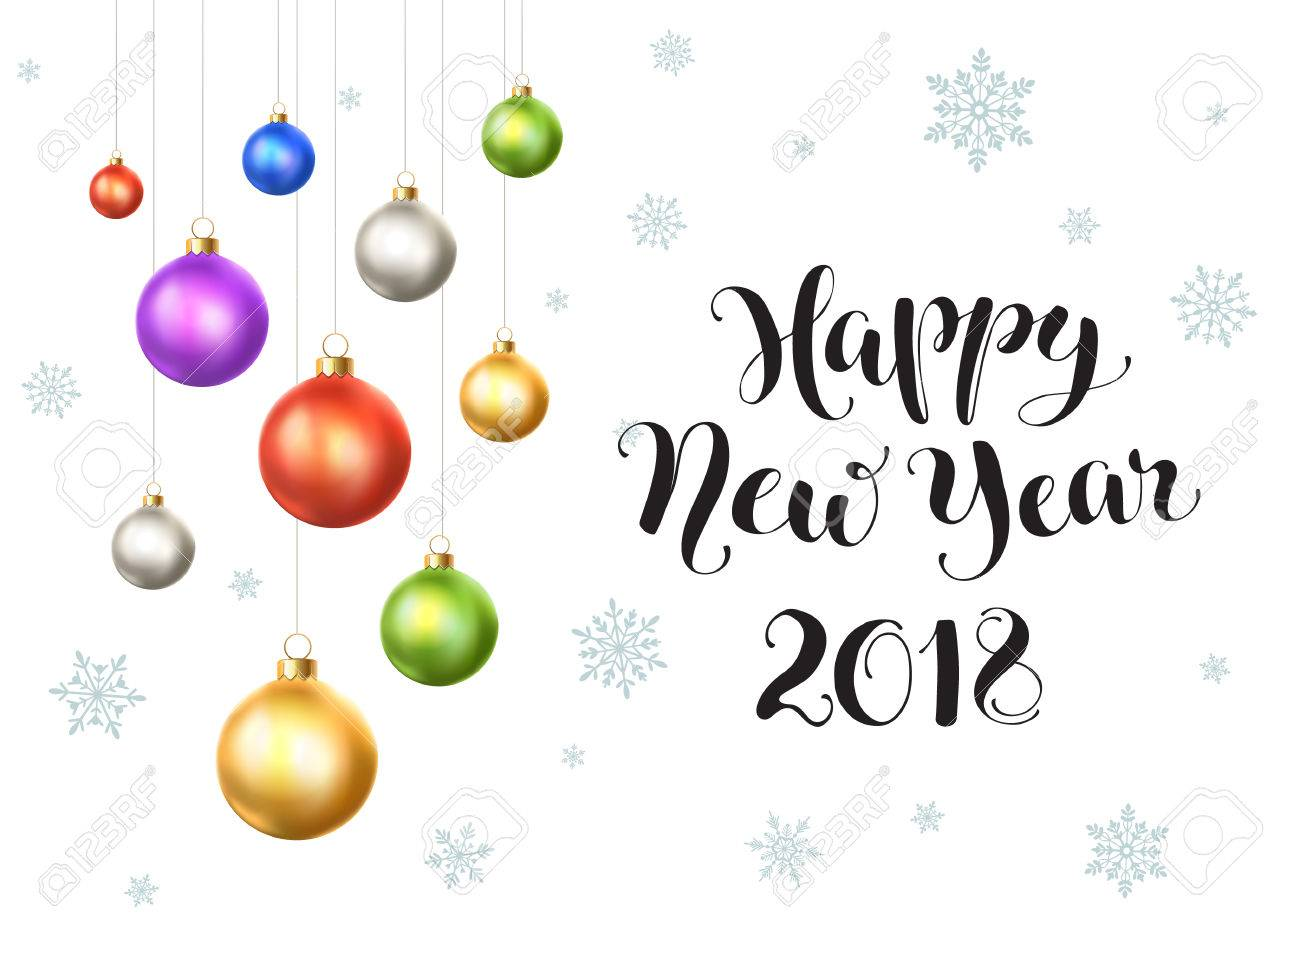 happy new year 2018 postcard template modern lettering with snowflakes and christmas balls isolated on